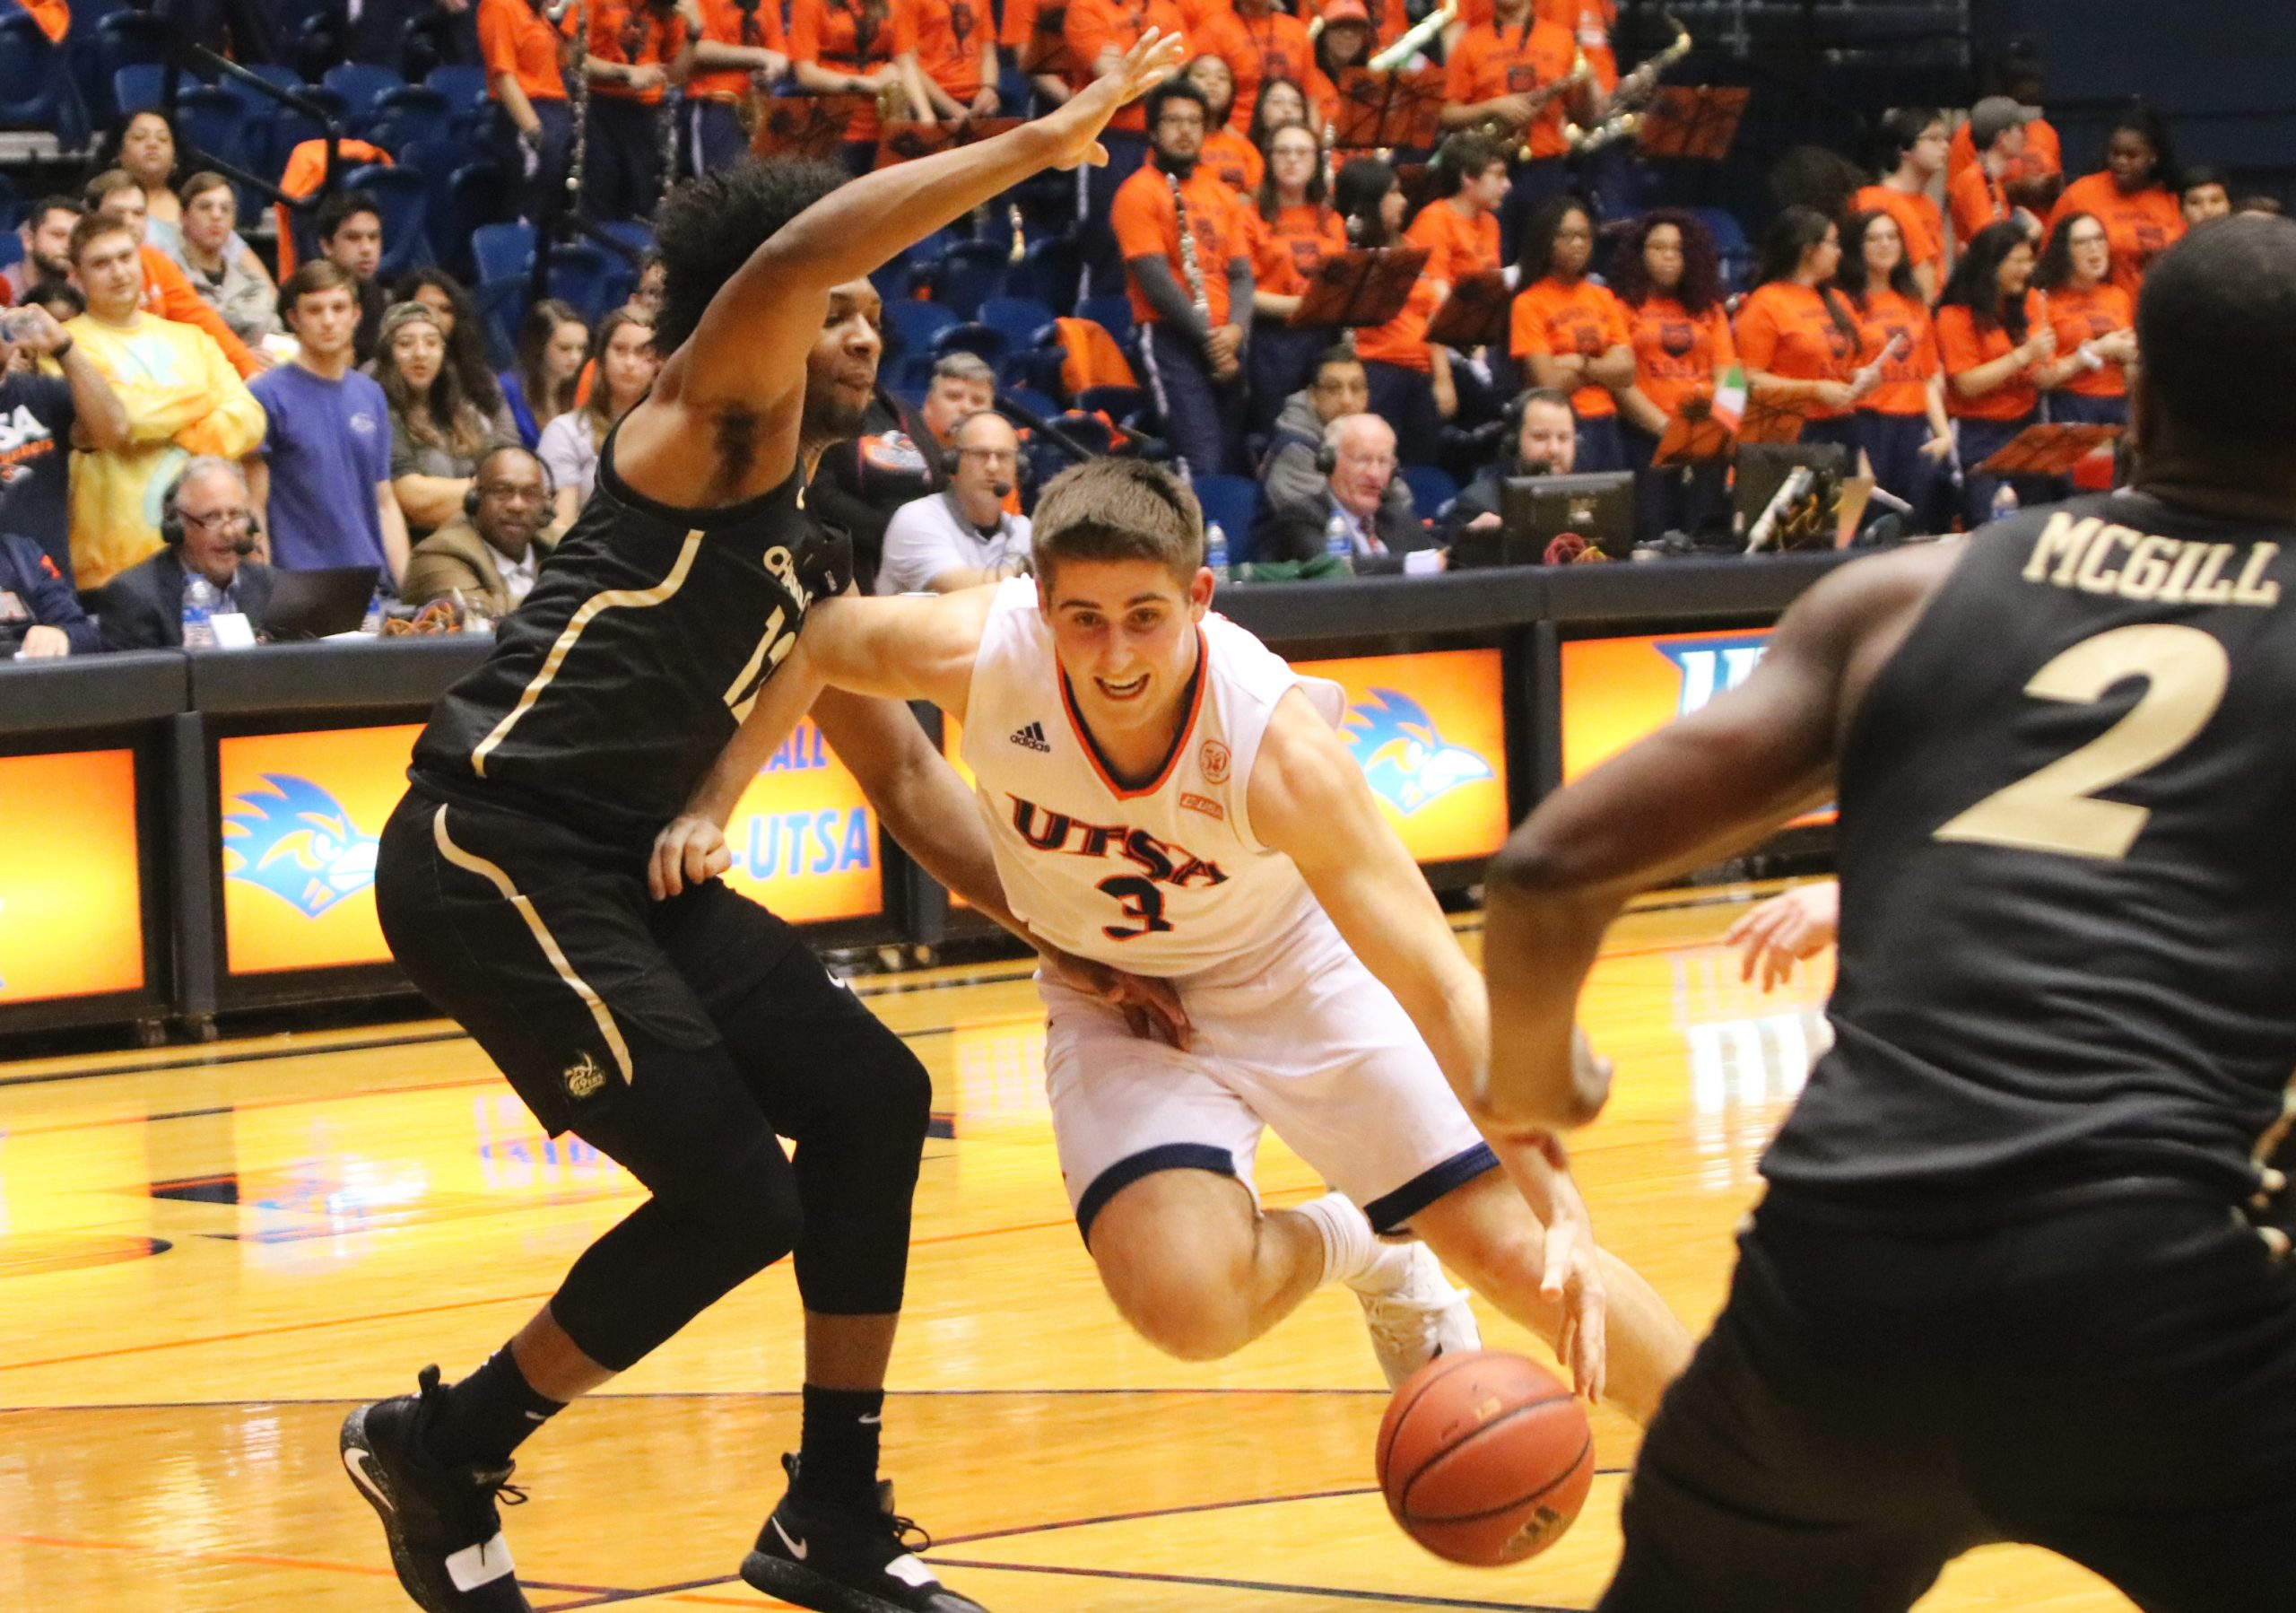 Byron Frohnen dribbles for a layup in the paint. Ellyson Ortega/The Paisano